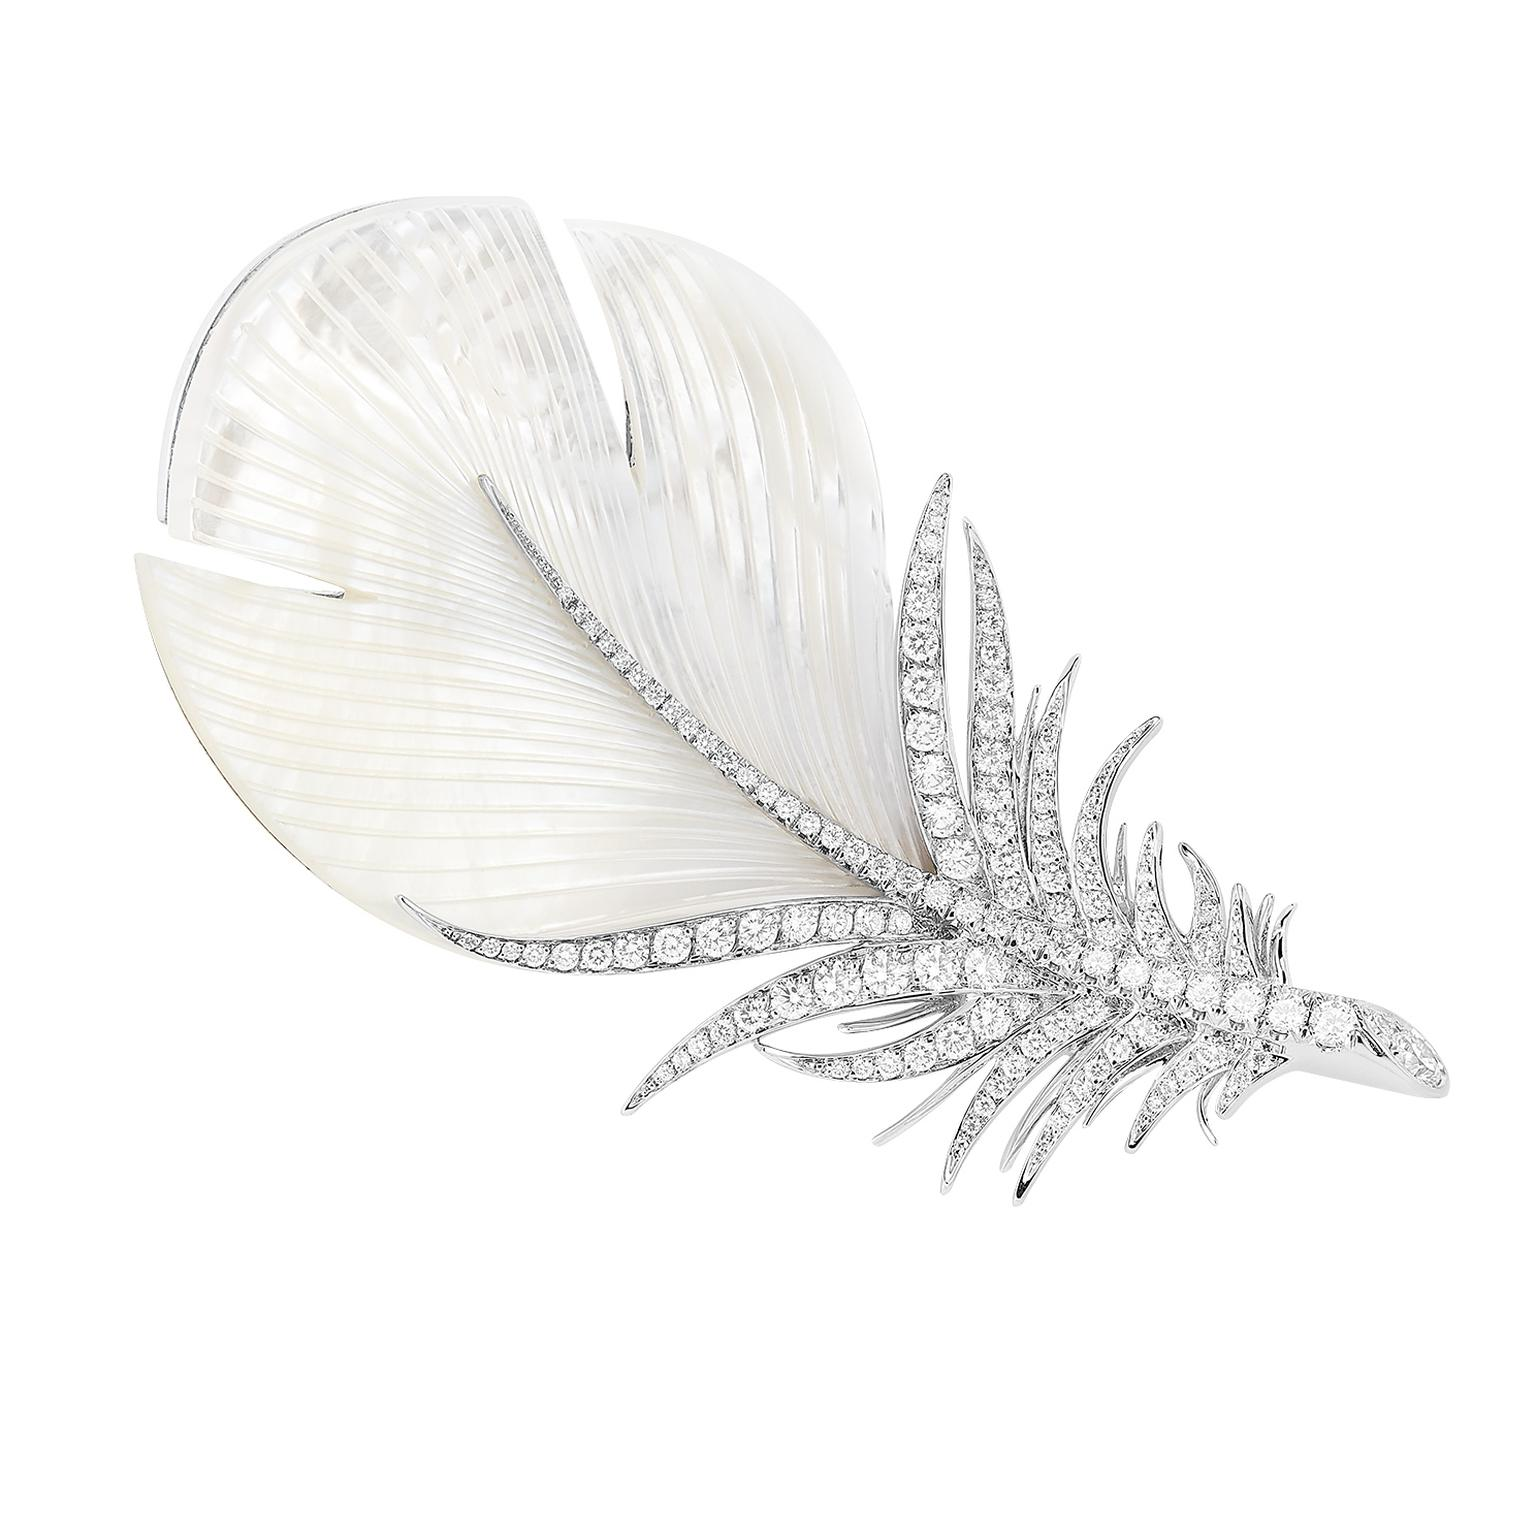 Boucheron Brooch Caresse de Plume - mother-of-pearl, diamonds, white gold copy